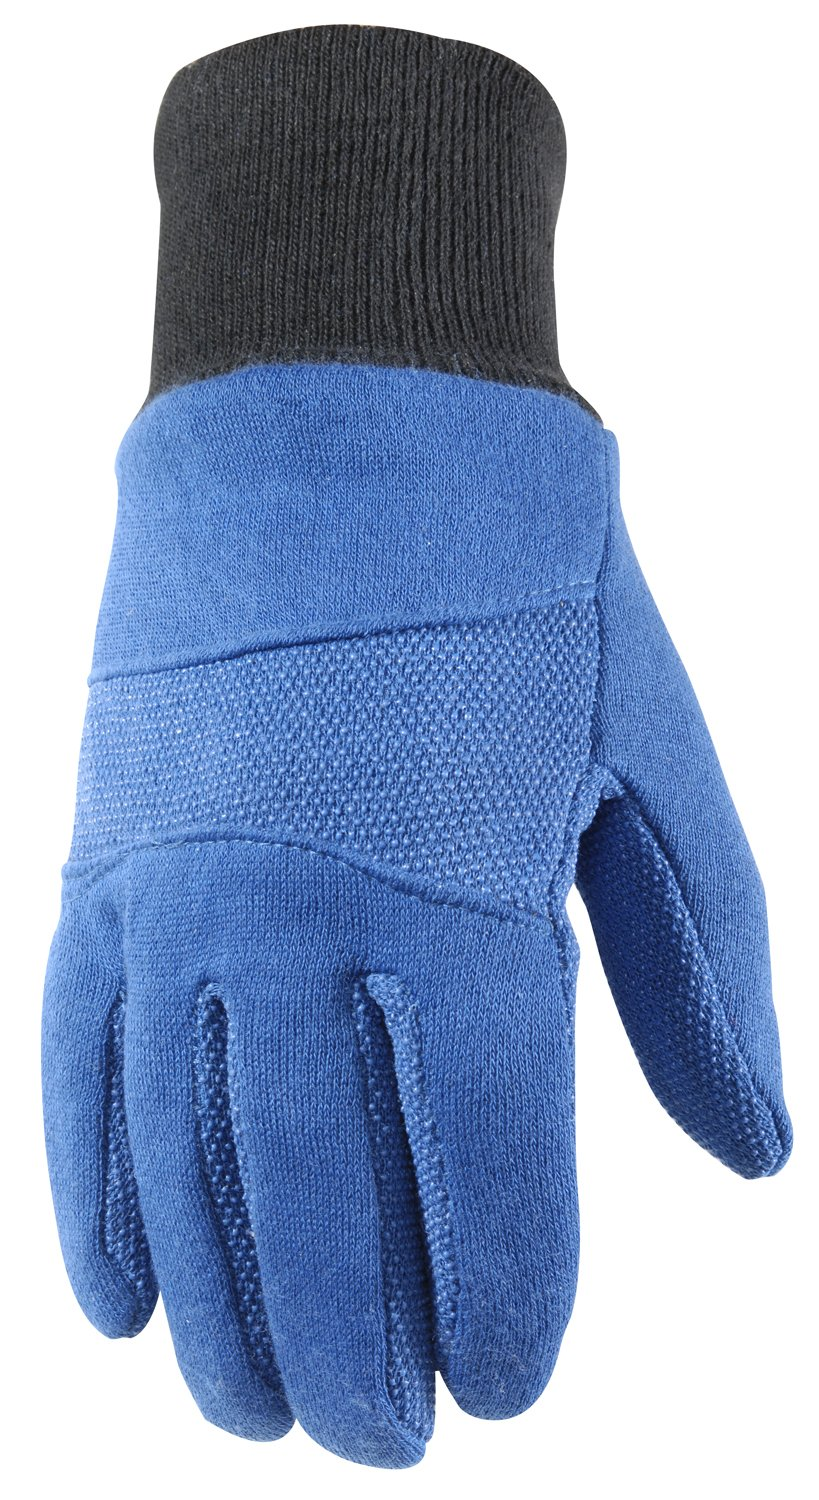 Insulated leather work gloves amazon - Wells Lamont Cold Weather Work Gloves Insulated Jersey Extra Large 716xl Amazon Com